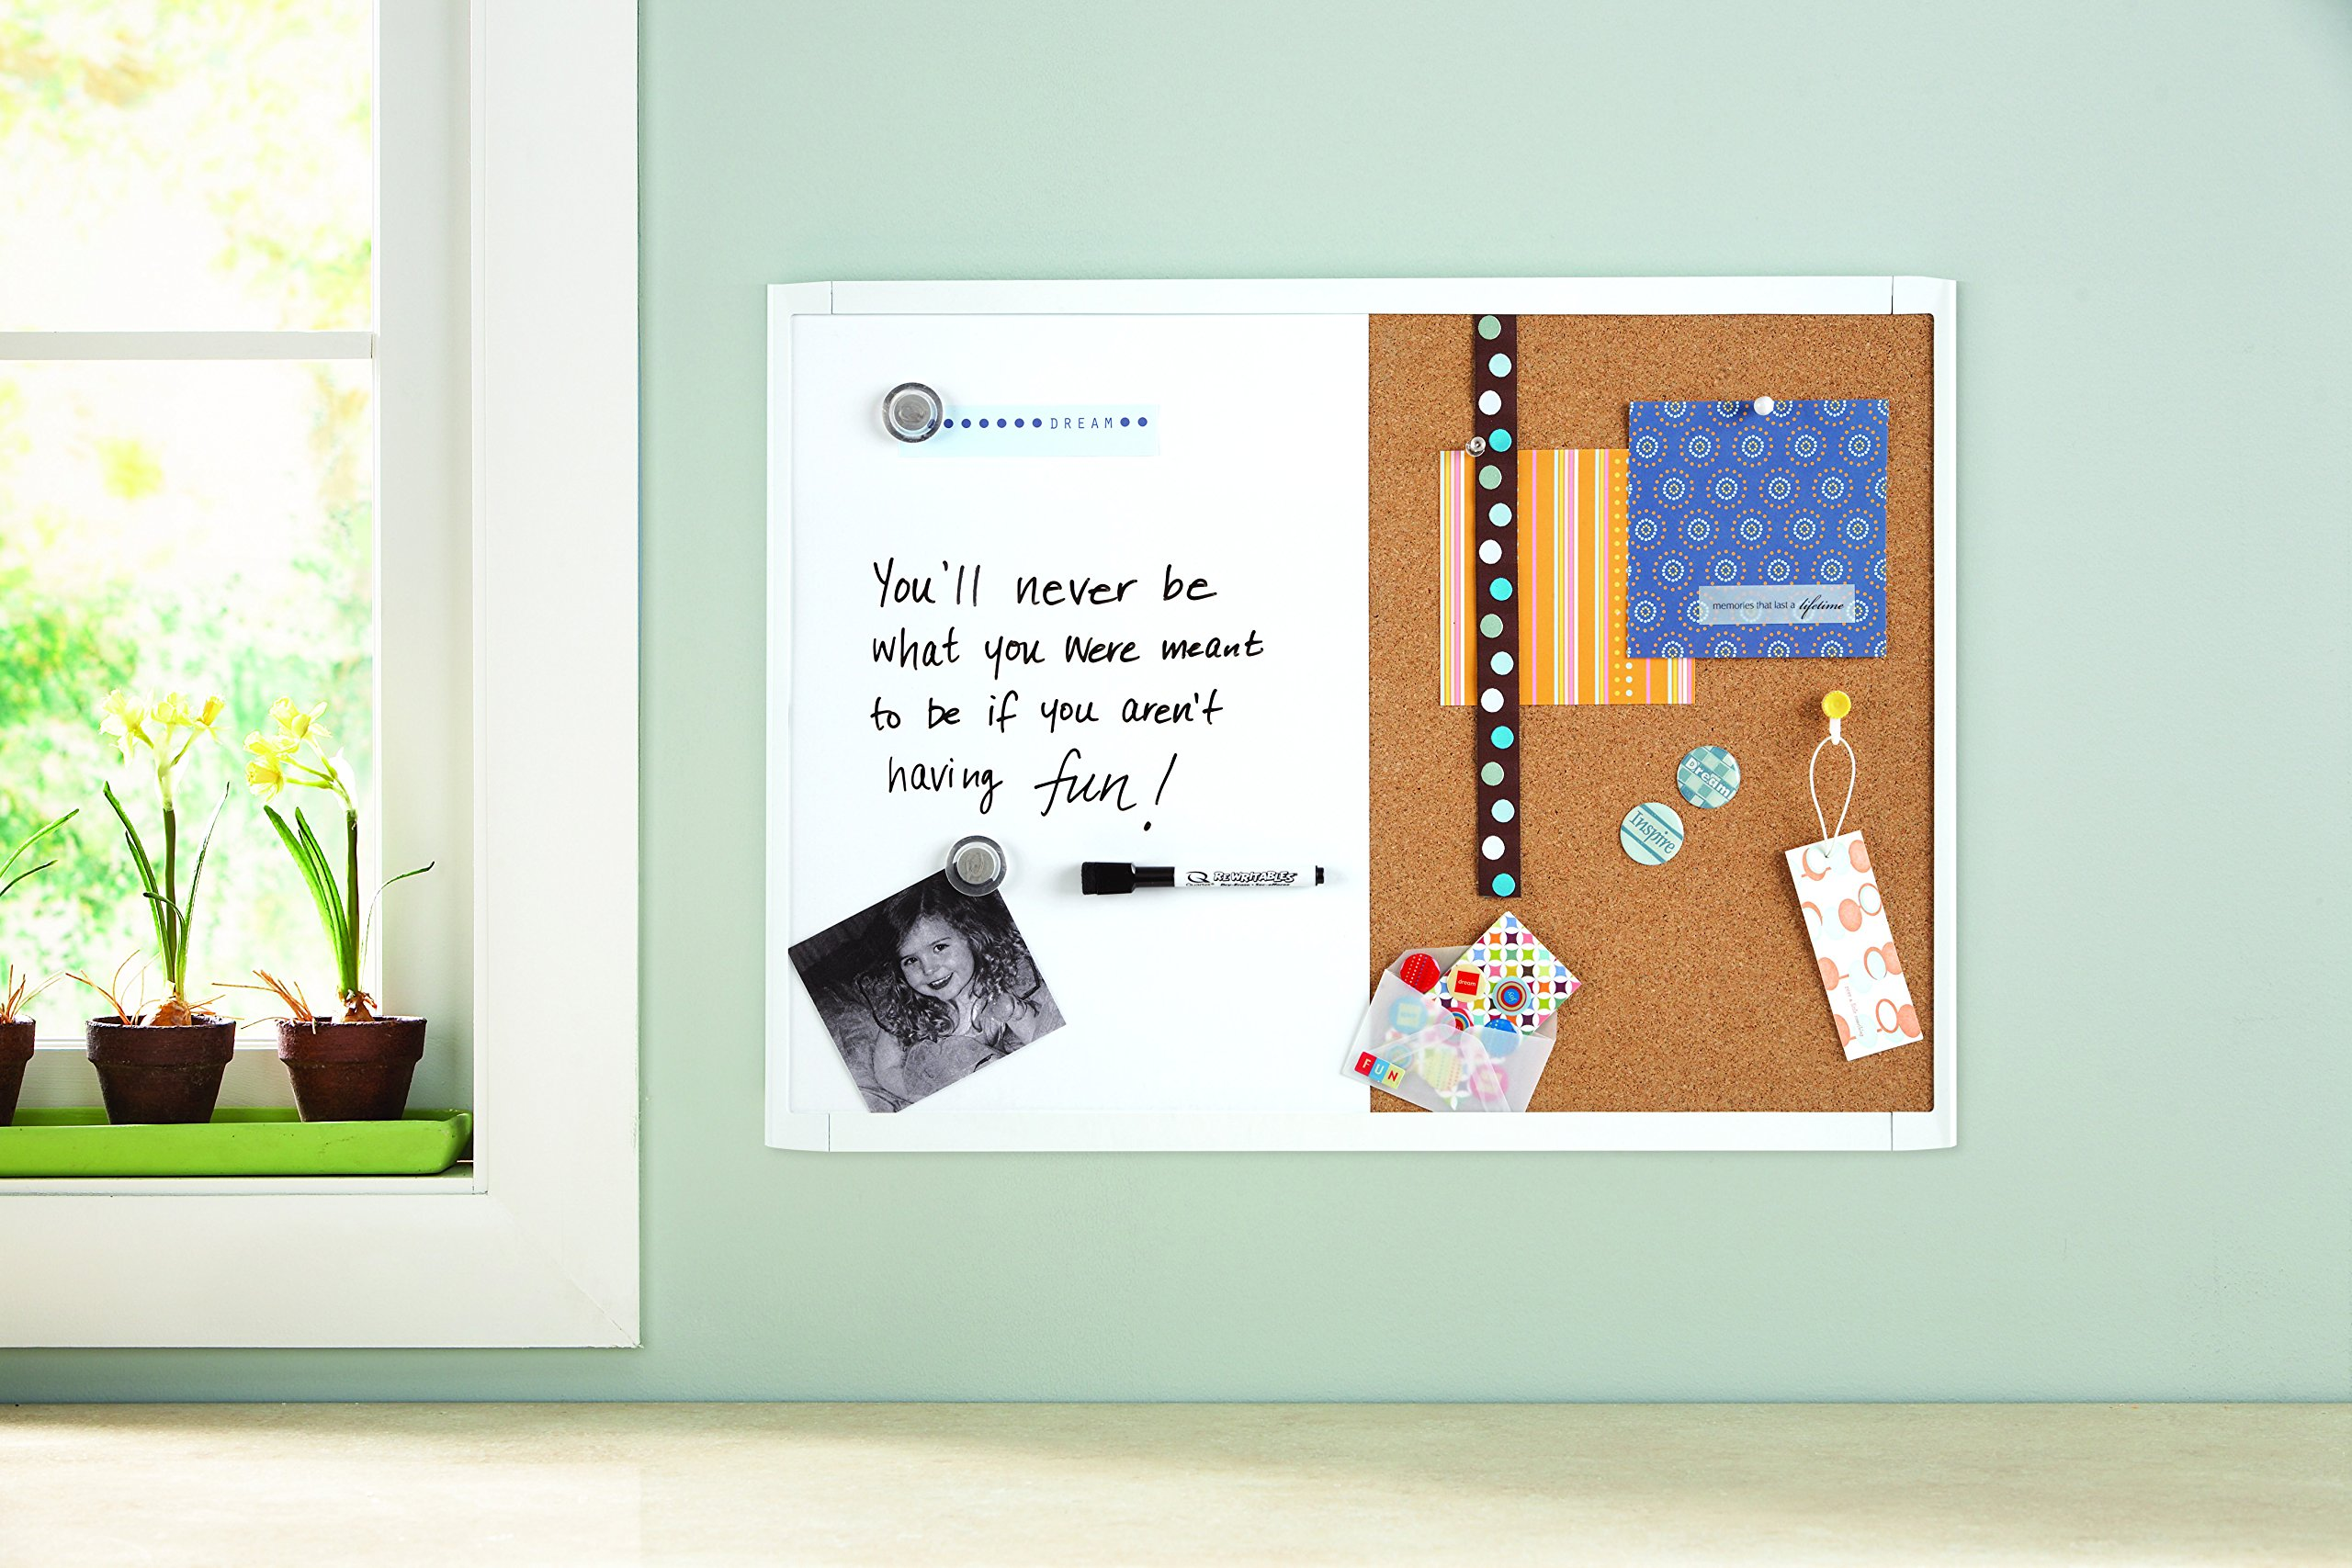 Quartet White Magnetic and Combination Board, 17 x 23 Inches, Frame Color May Vary (21-580653Q) by Quartet (Image #2)